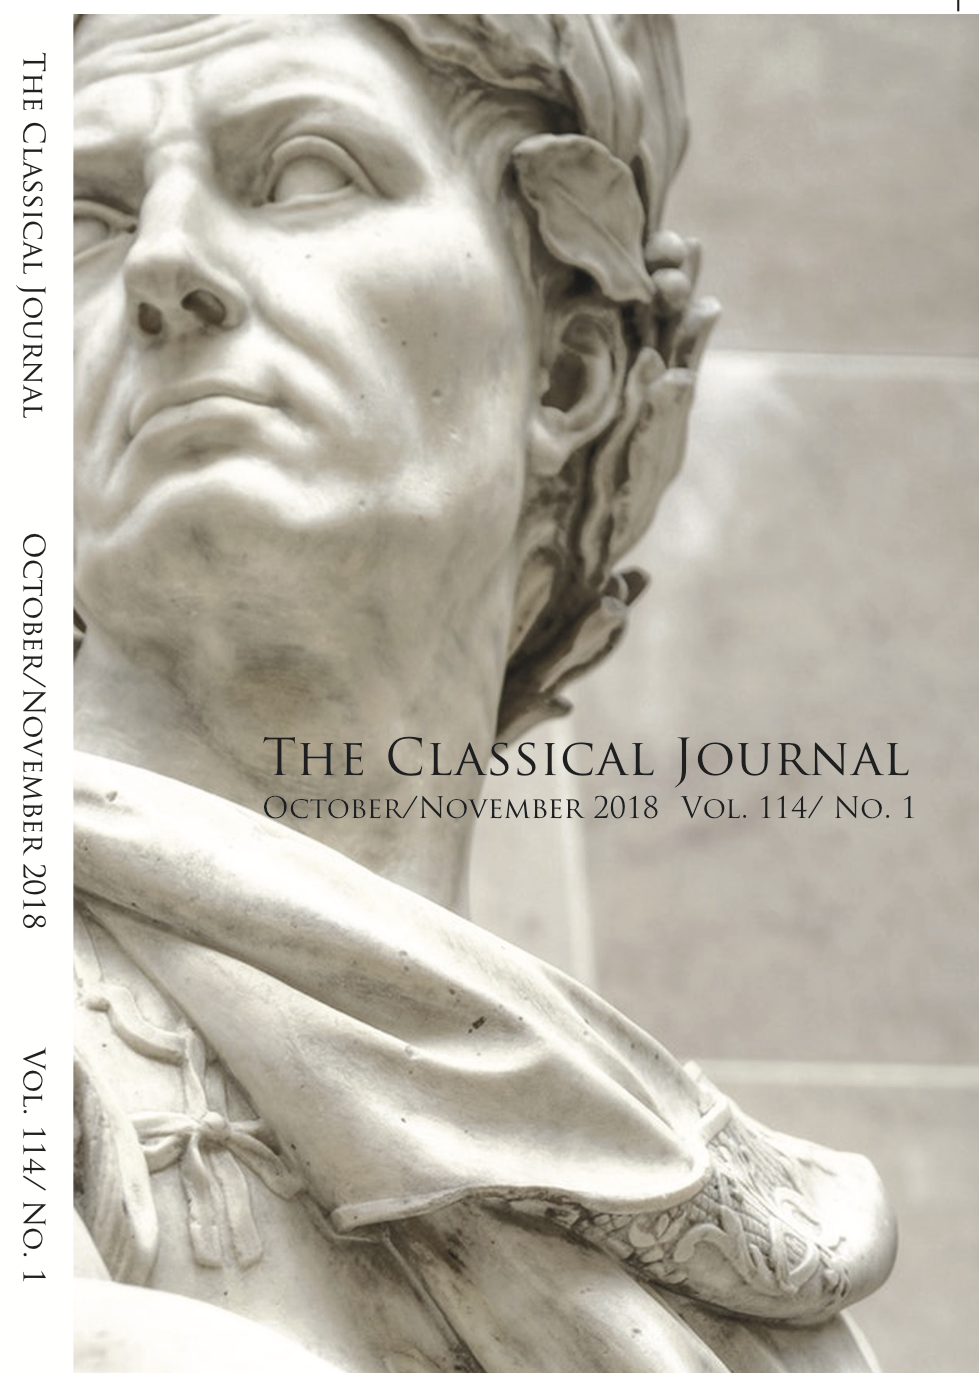 Journal Cover - Title in black lettering above a photograph of the head of a marble sculpture with a white vertical banner on the left.